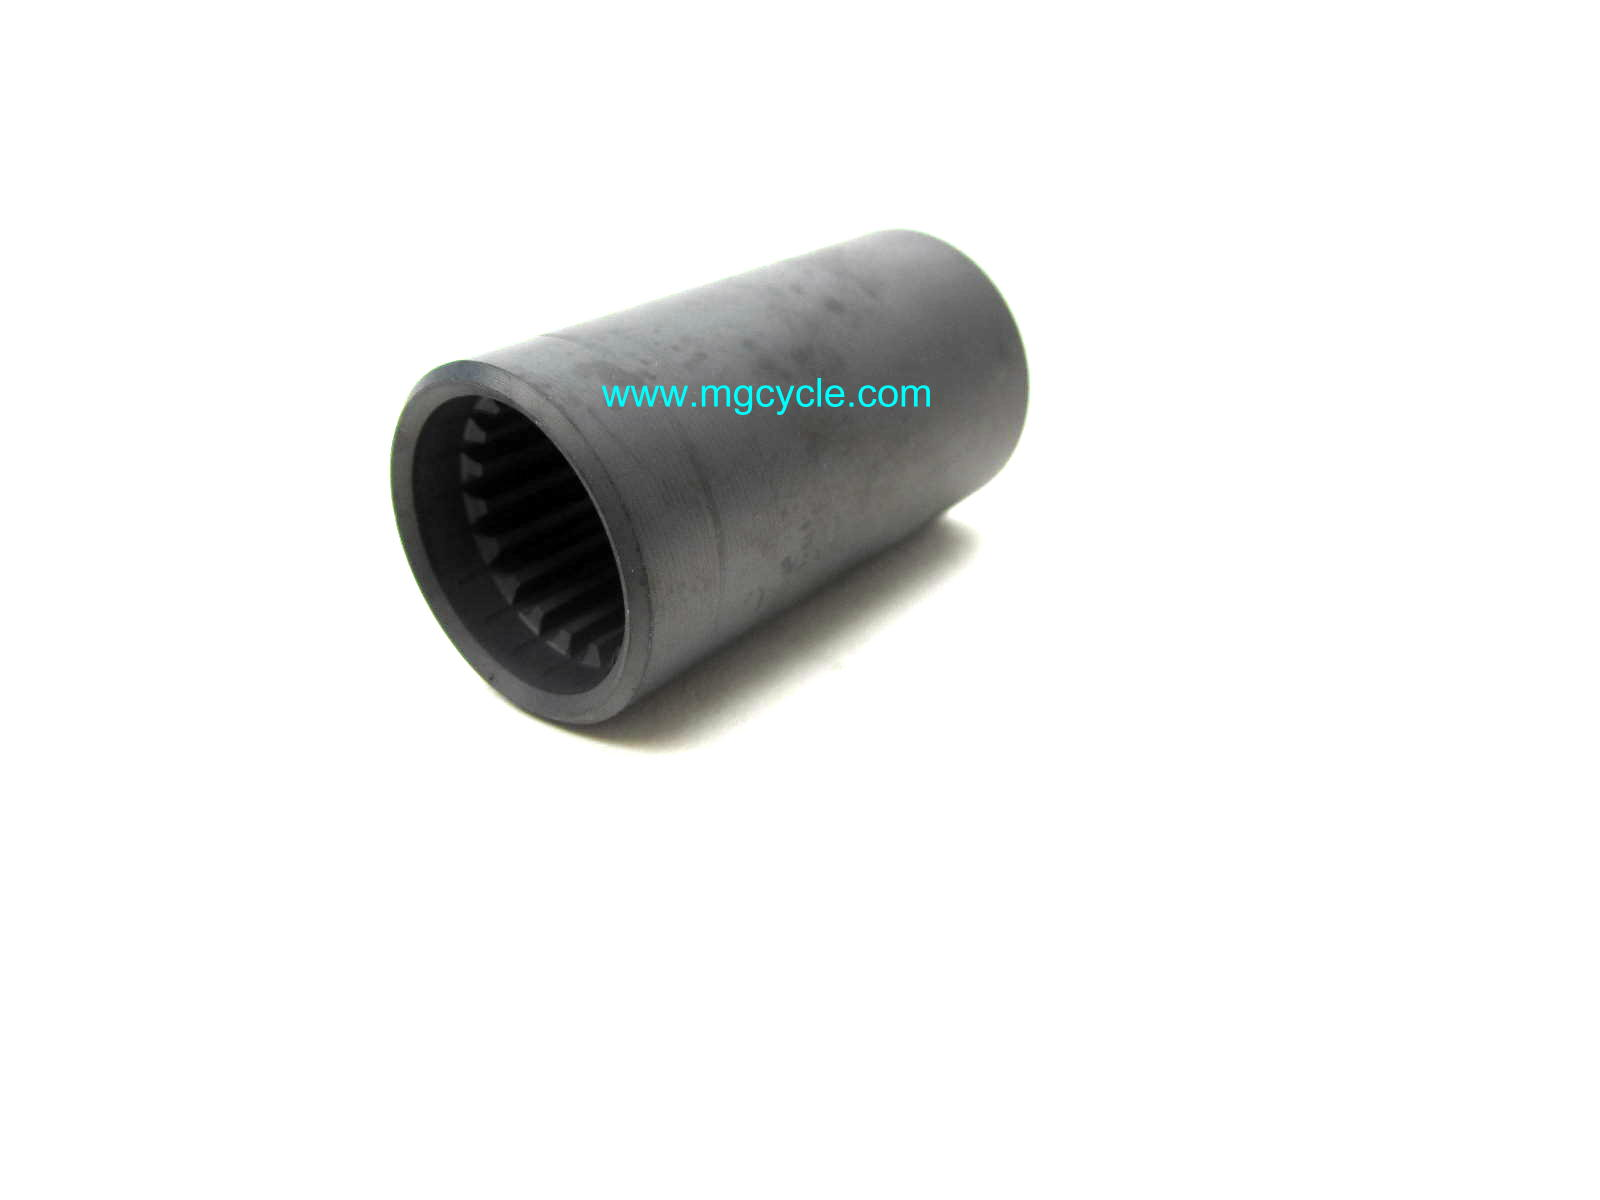 driveshaft coupling sleeve, 20 tooth: V1000 Convert, Cal2 Auto